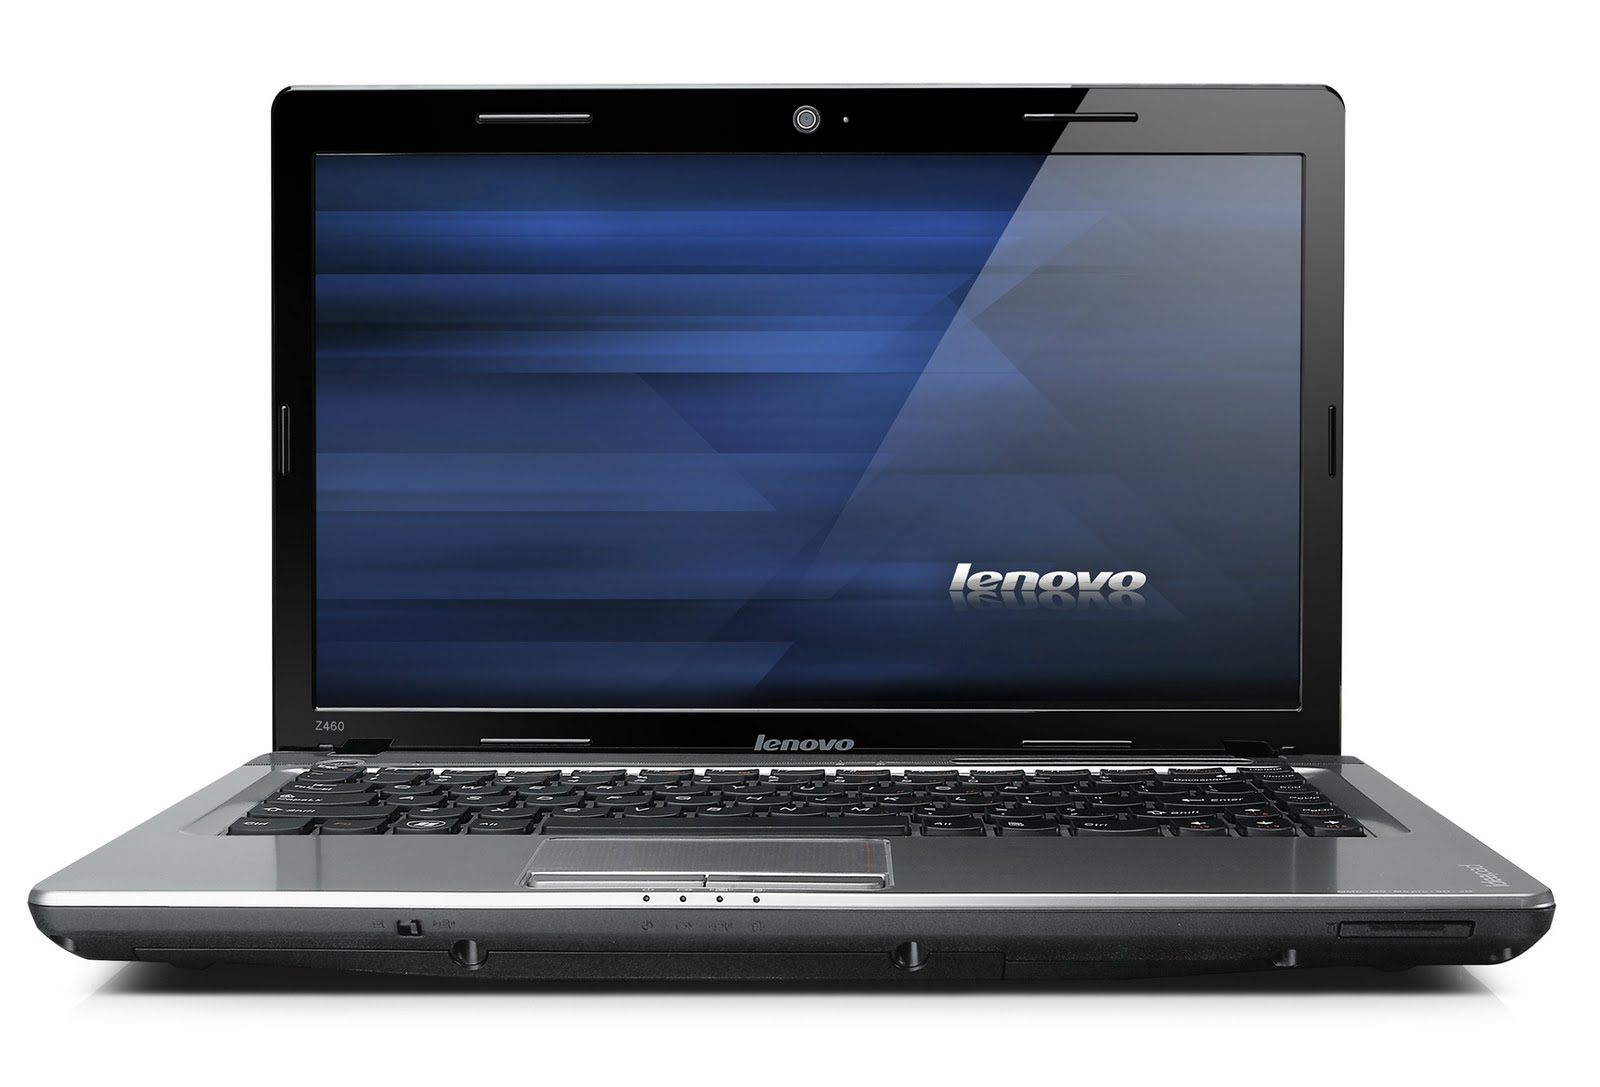 DSE COMPUTER SALES AND SERVICE: LENOVO LAPTOP NOTEBOOK PRICE NEW